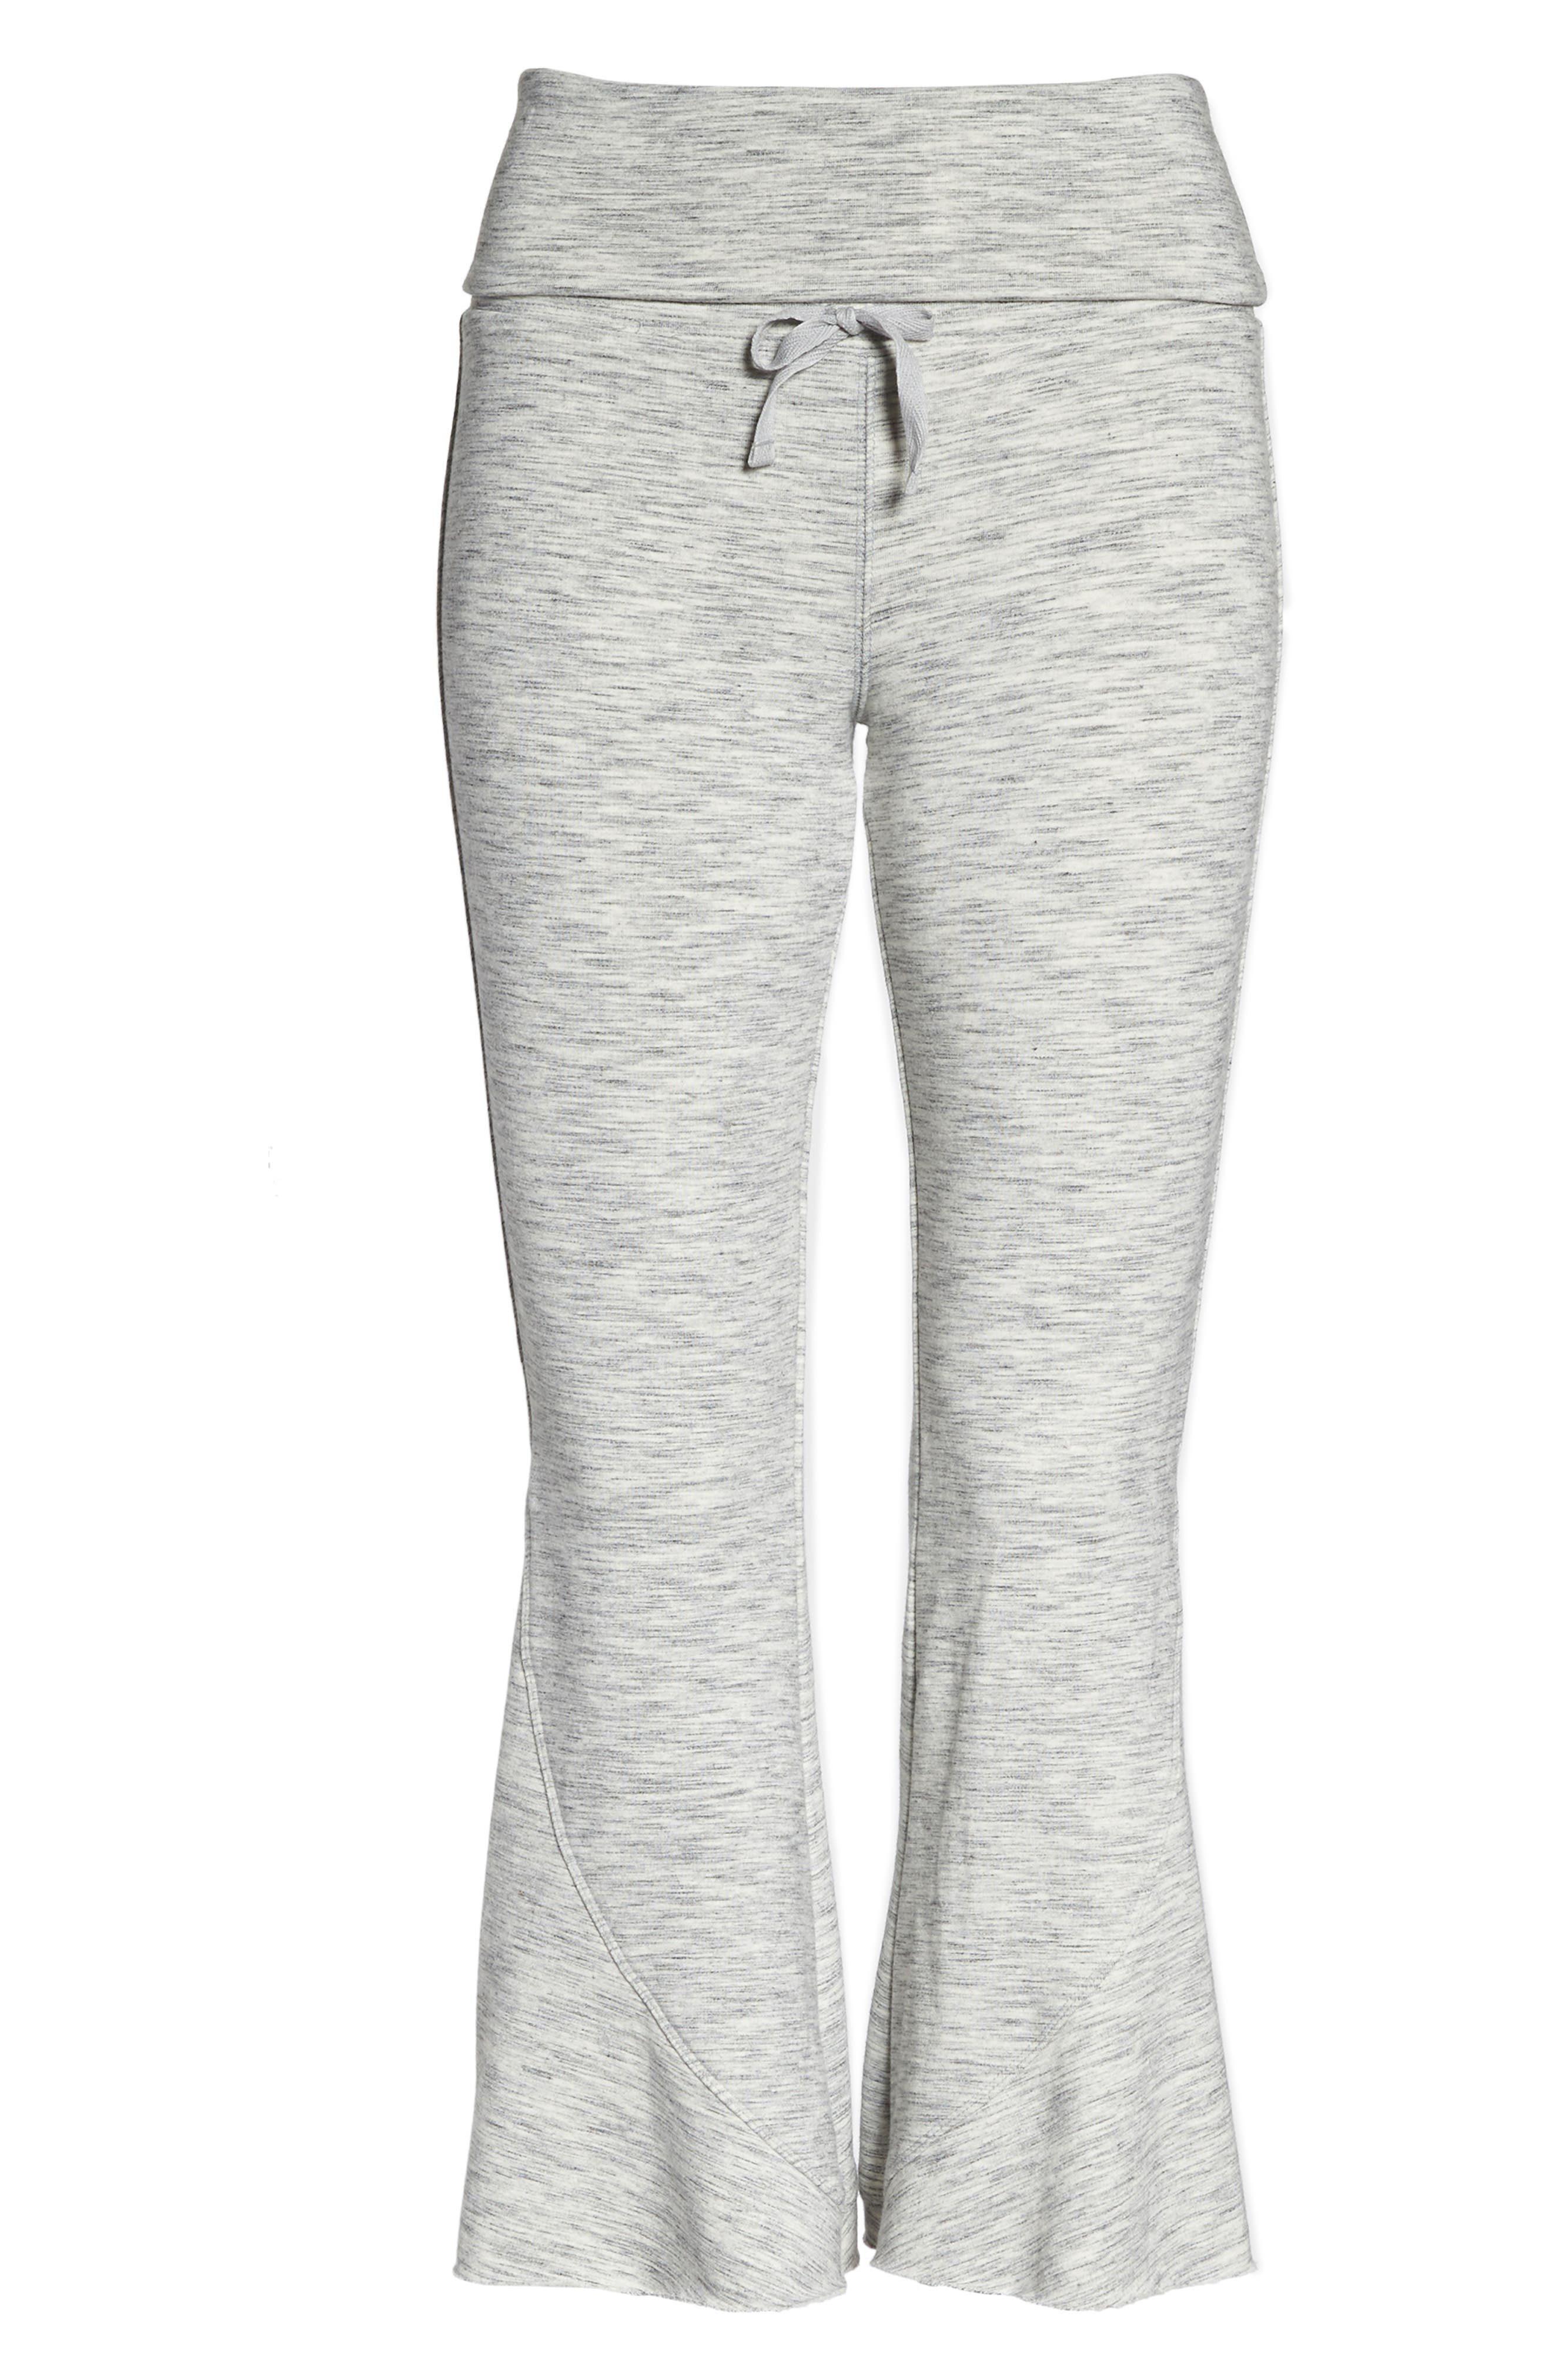 FP Movement Nico Crop Flare Sweatpants,                             Alternate thumbnail 7, color,                             025